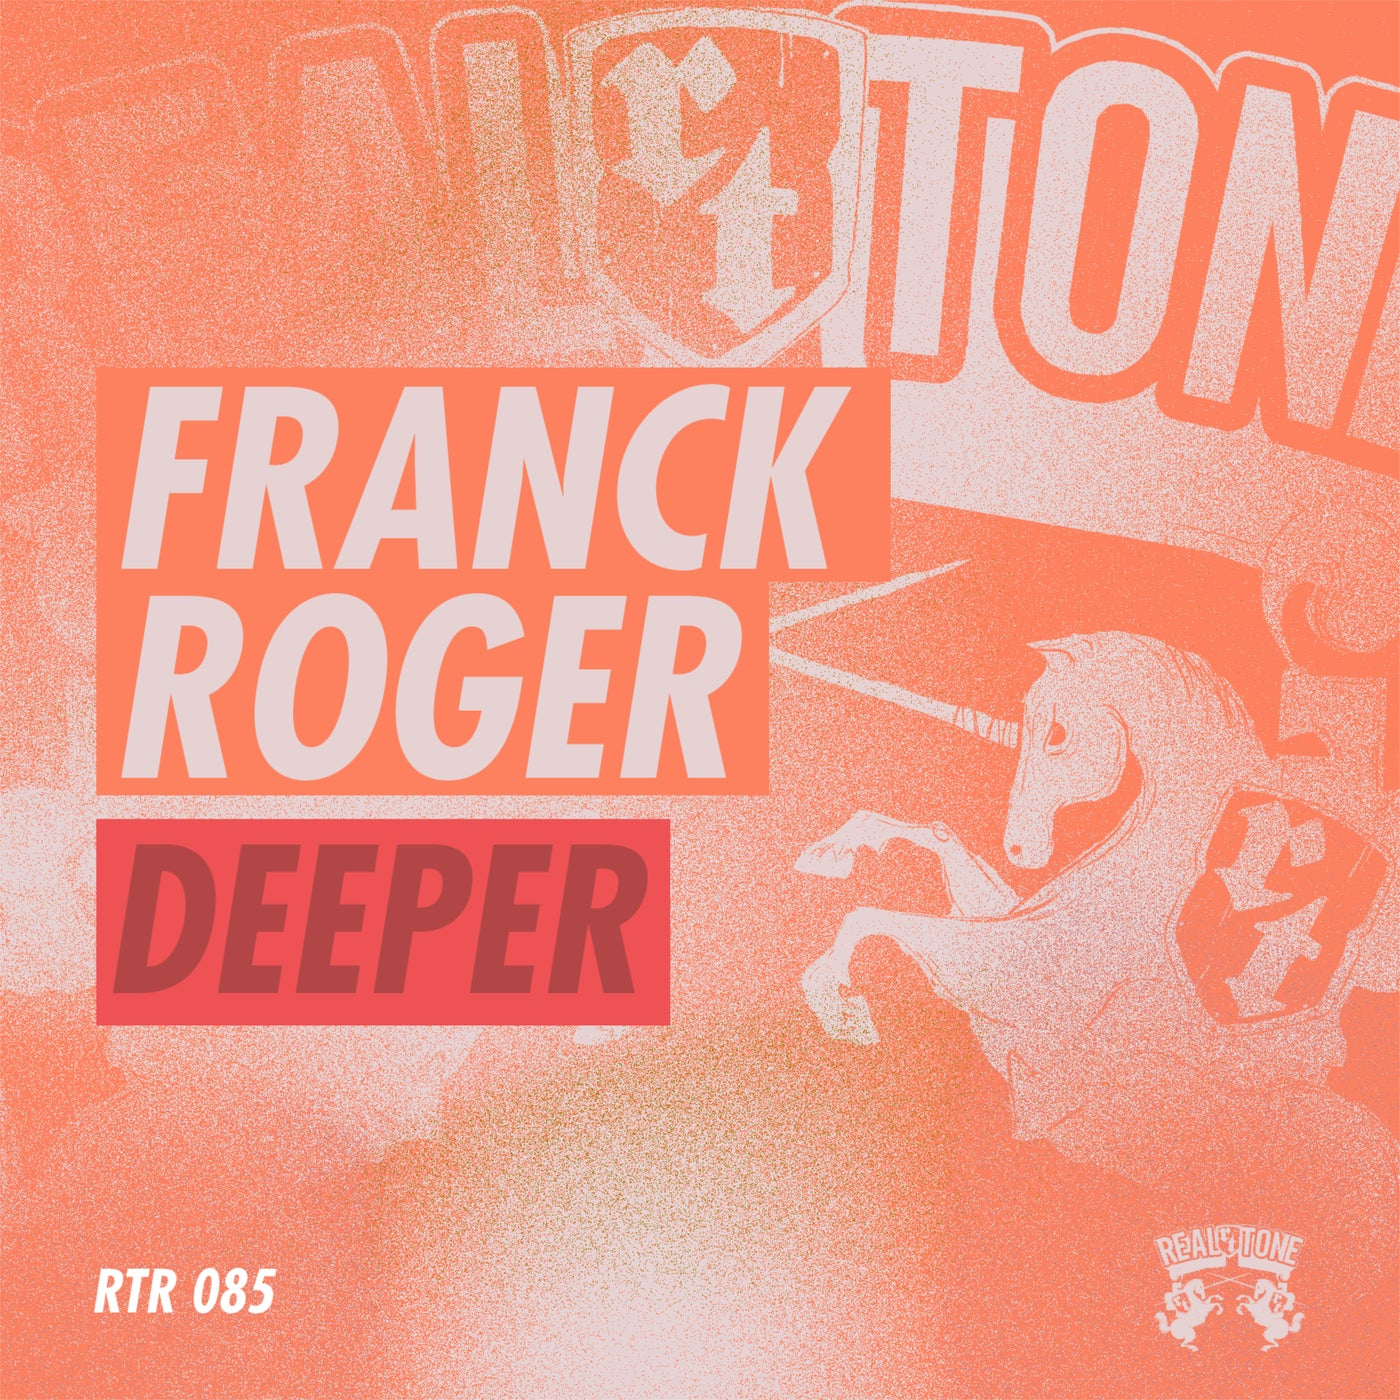 Download Deeper on Electrobuzz